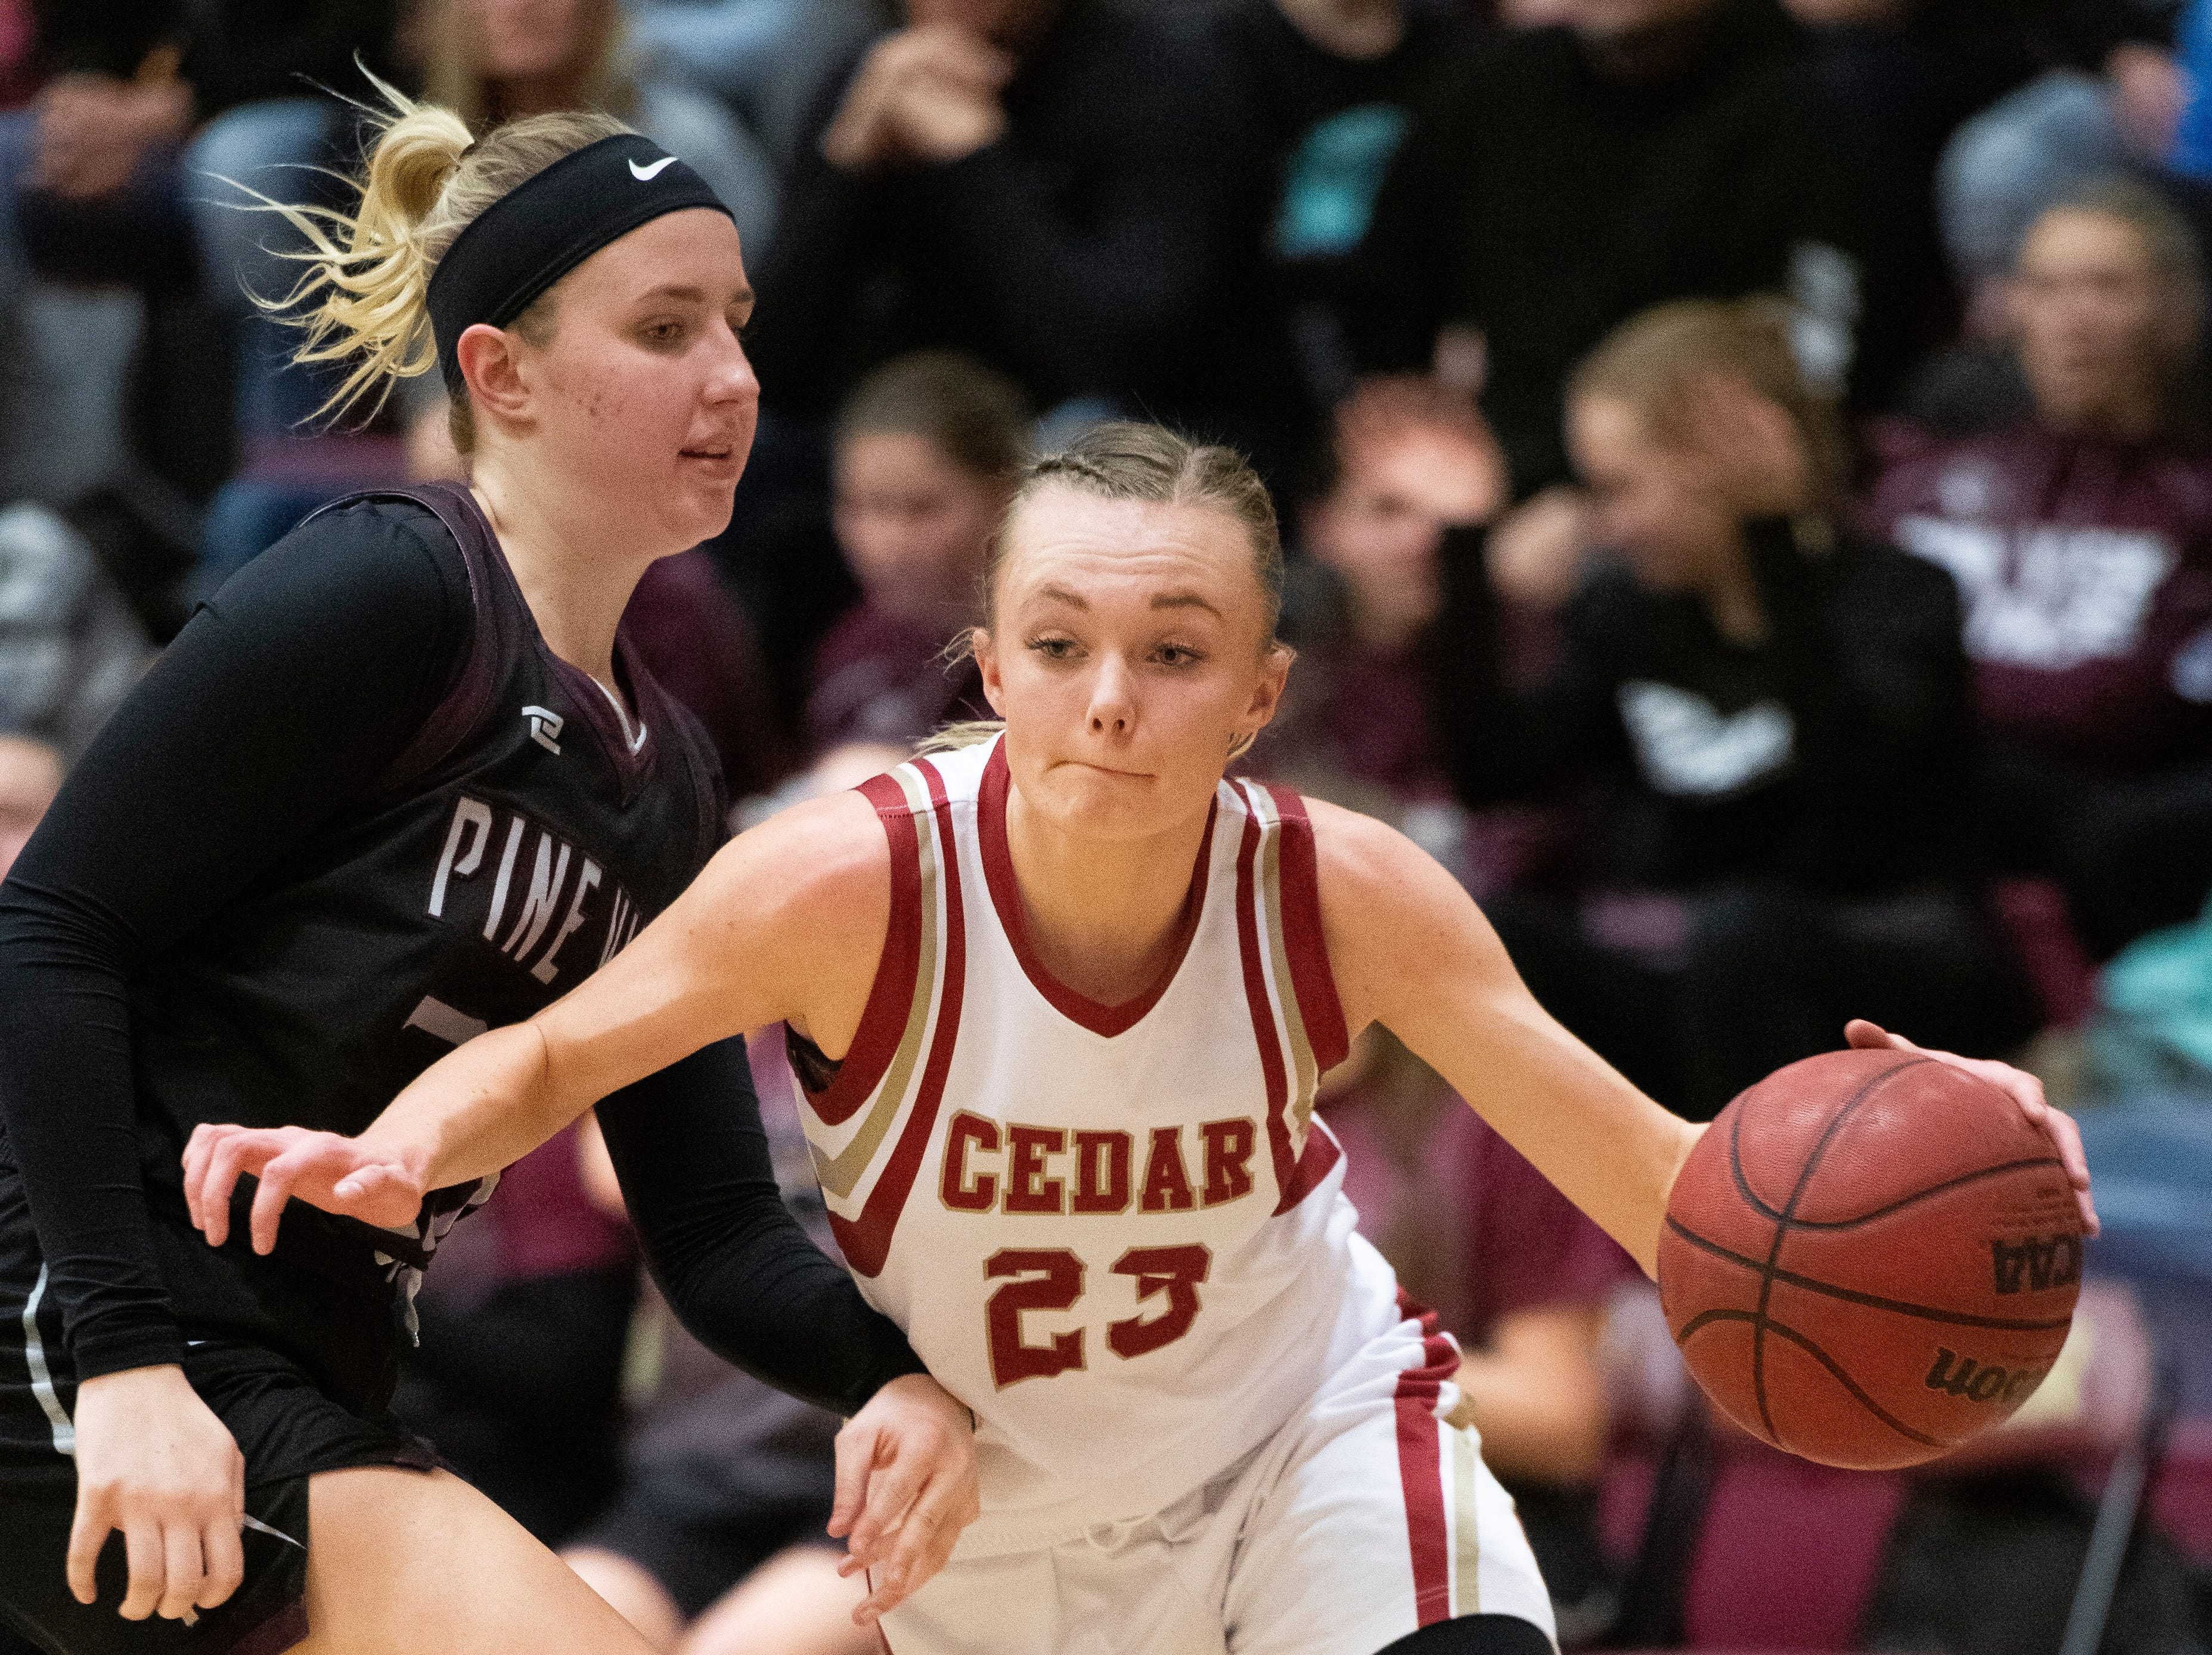 Cedar High School junior Mayci Torgerson (23) moves the ball against Pine View at CHS Tuesday, January 8, 2019. Cedar remains undefeated with a 63-40 win over the Panthers.